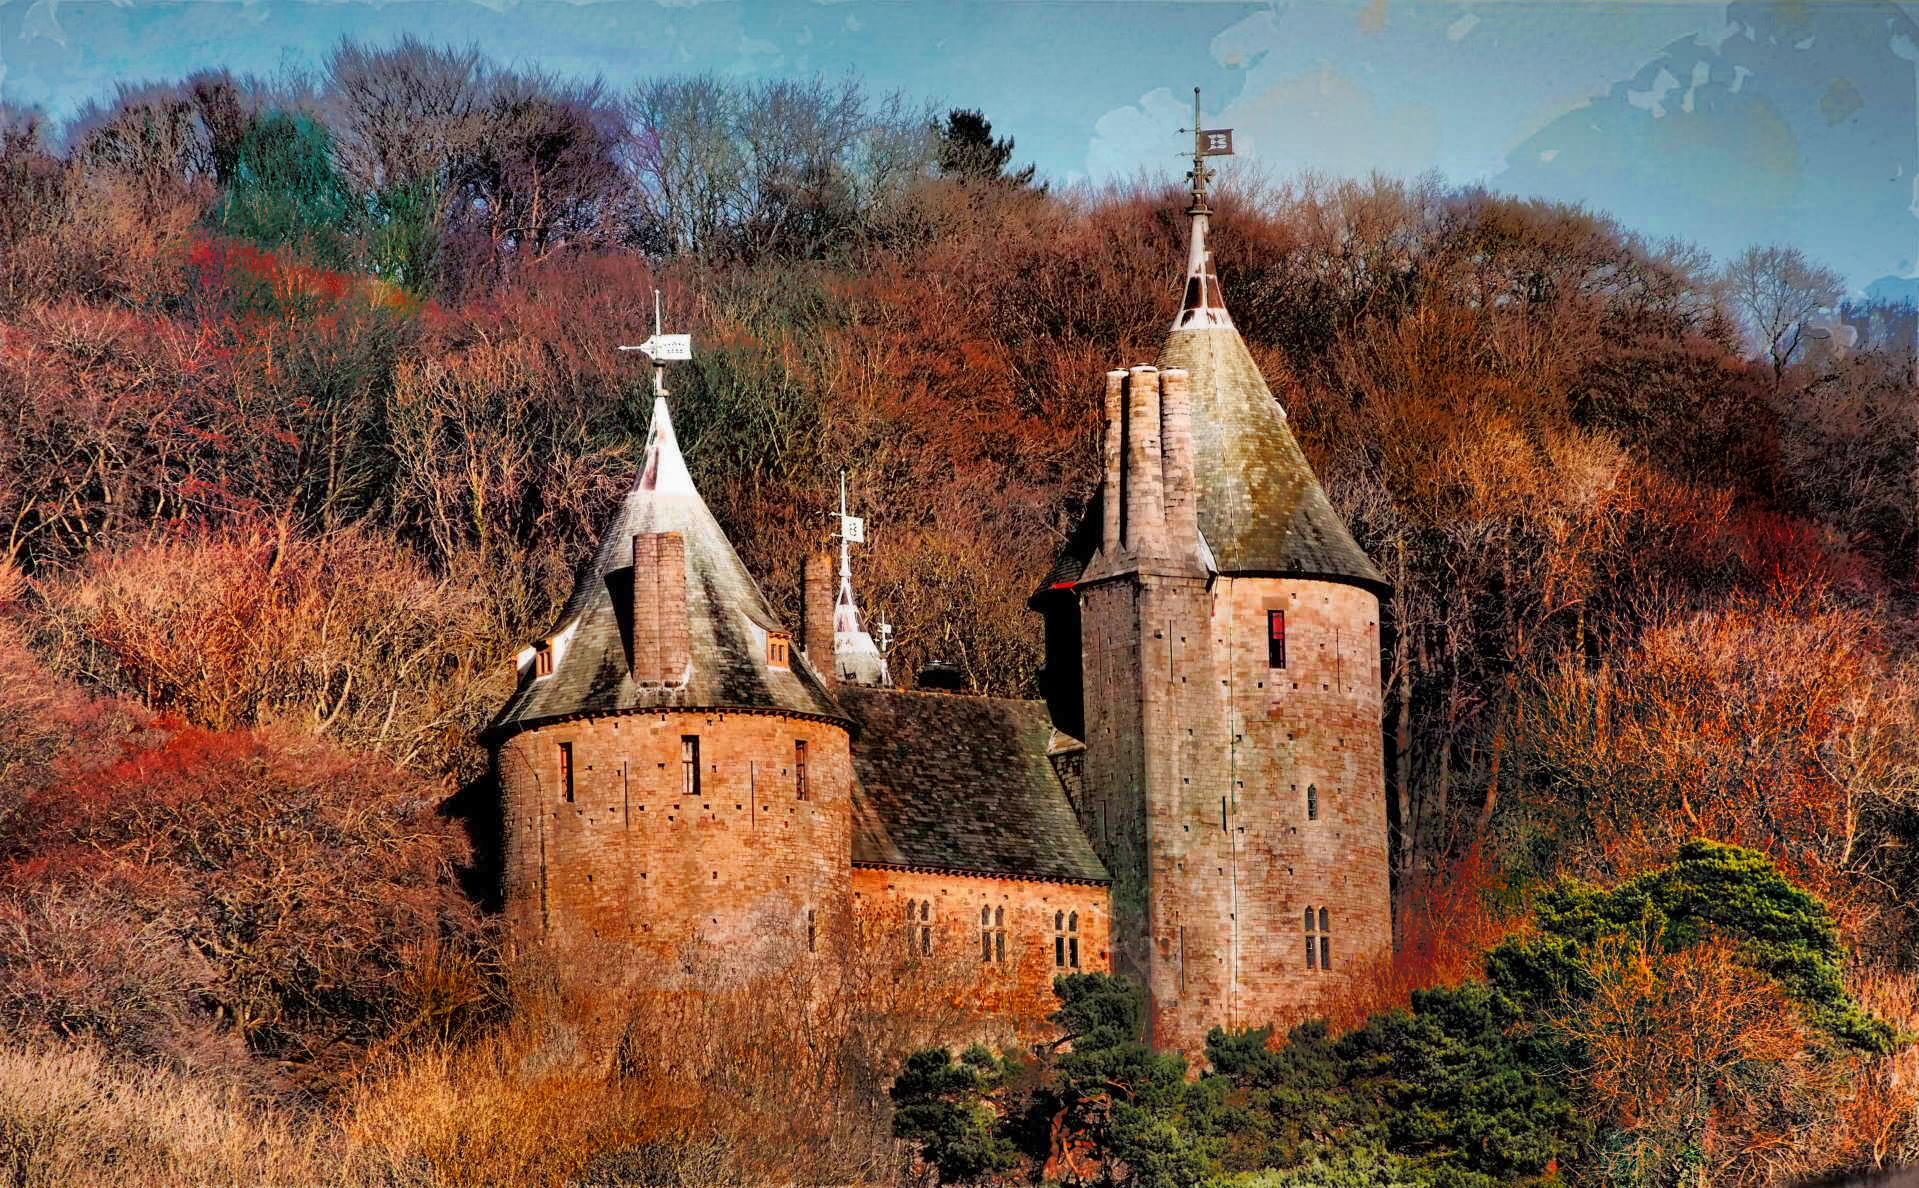 https://upload.wikimedia.org/wikipedia/commons/4/41/Castle_Coch_from_A470.jpg